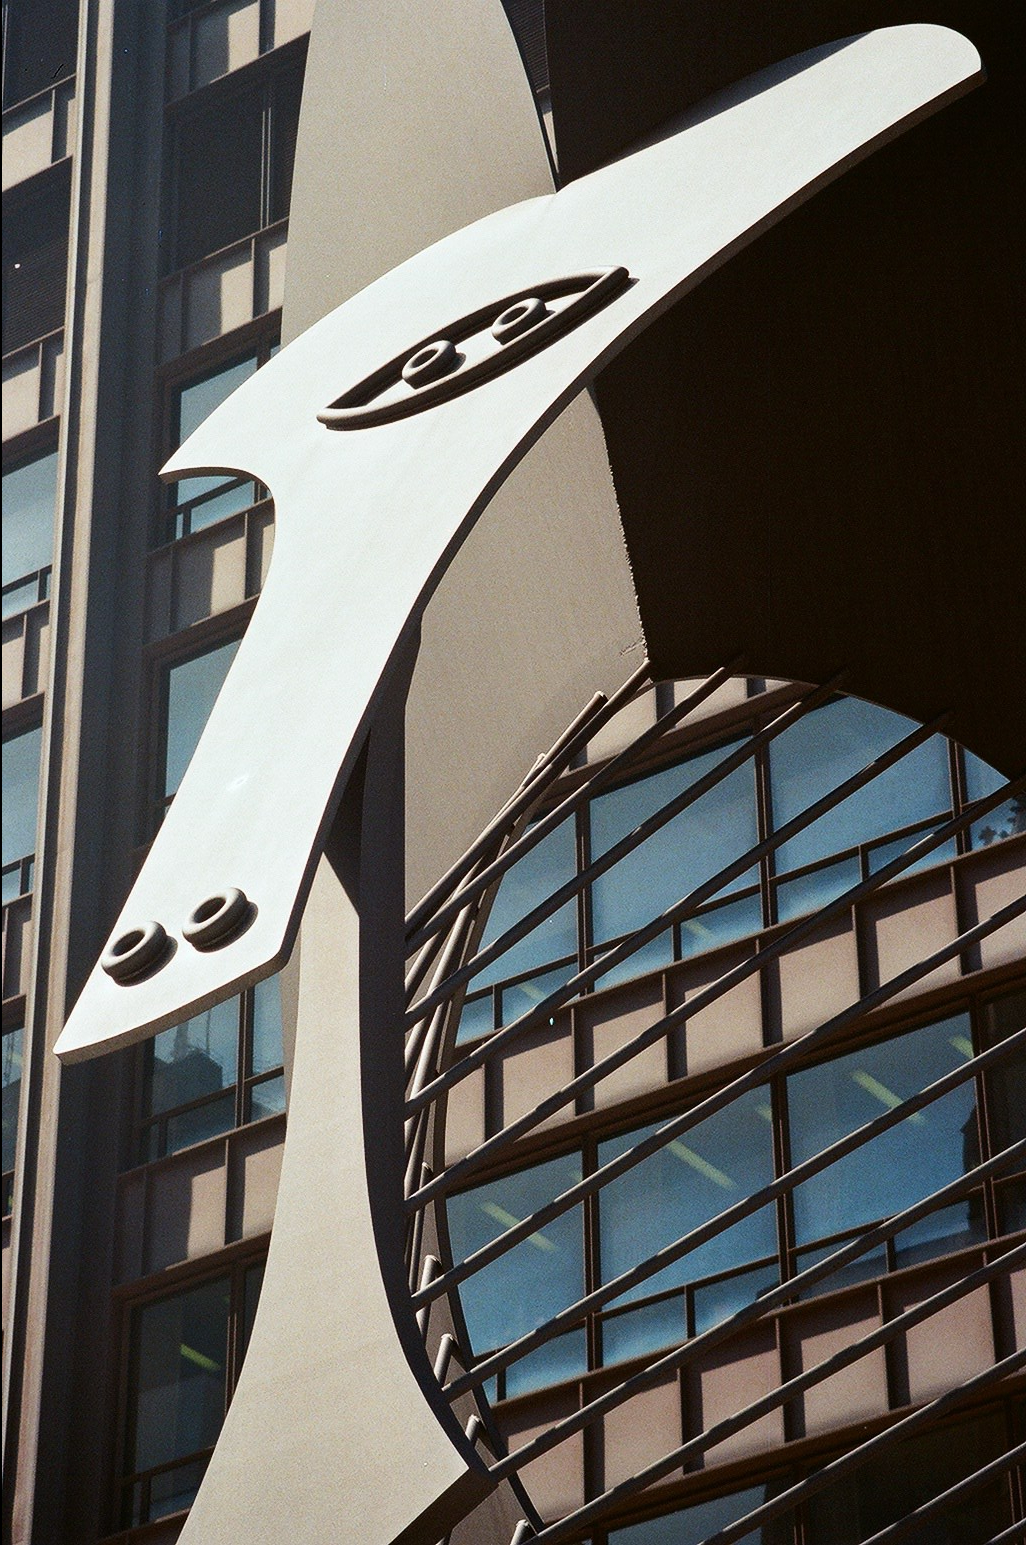 Picasso-Chicago-35MM-Film-The-Haute-Seeker